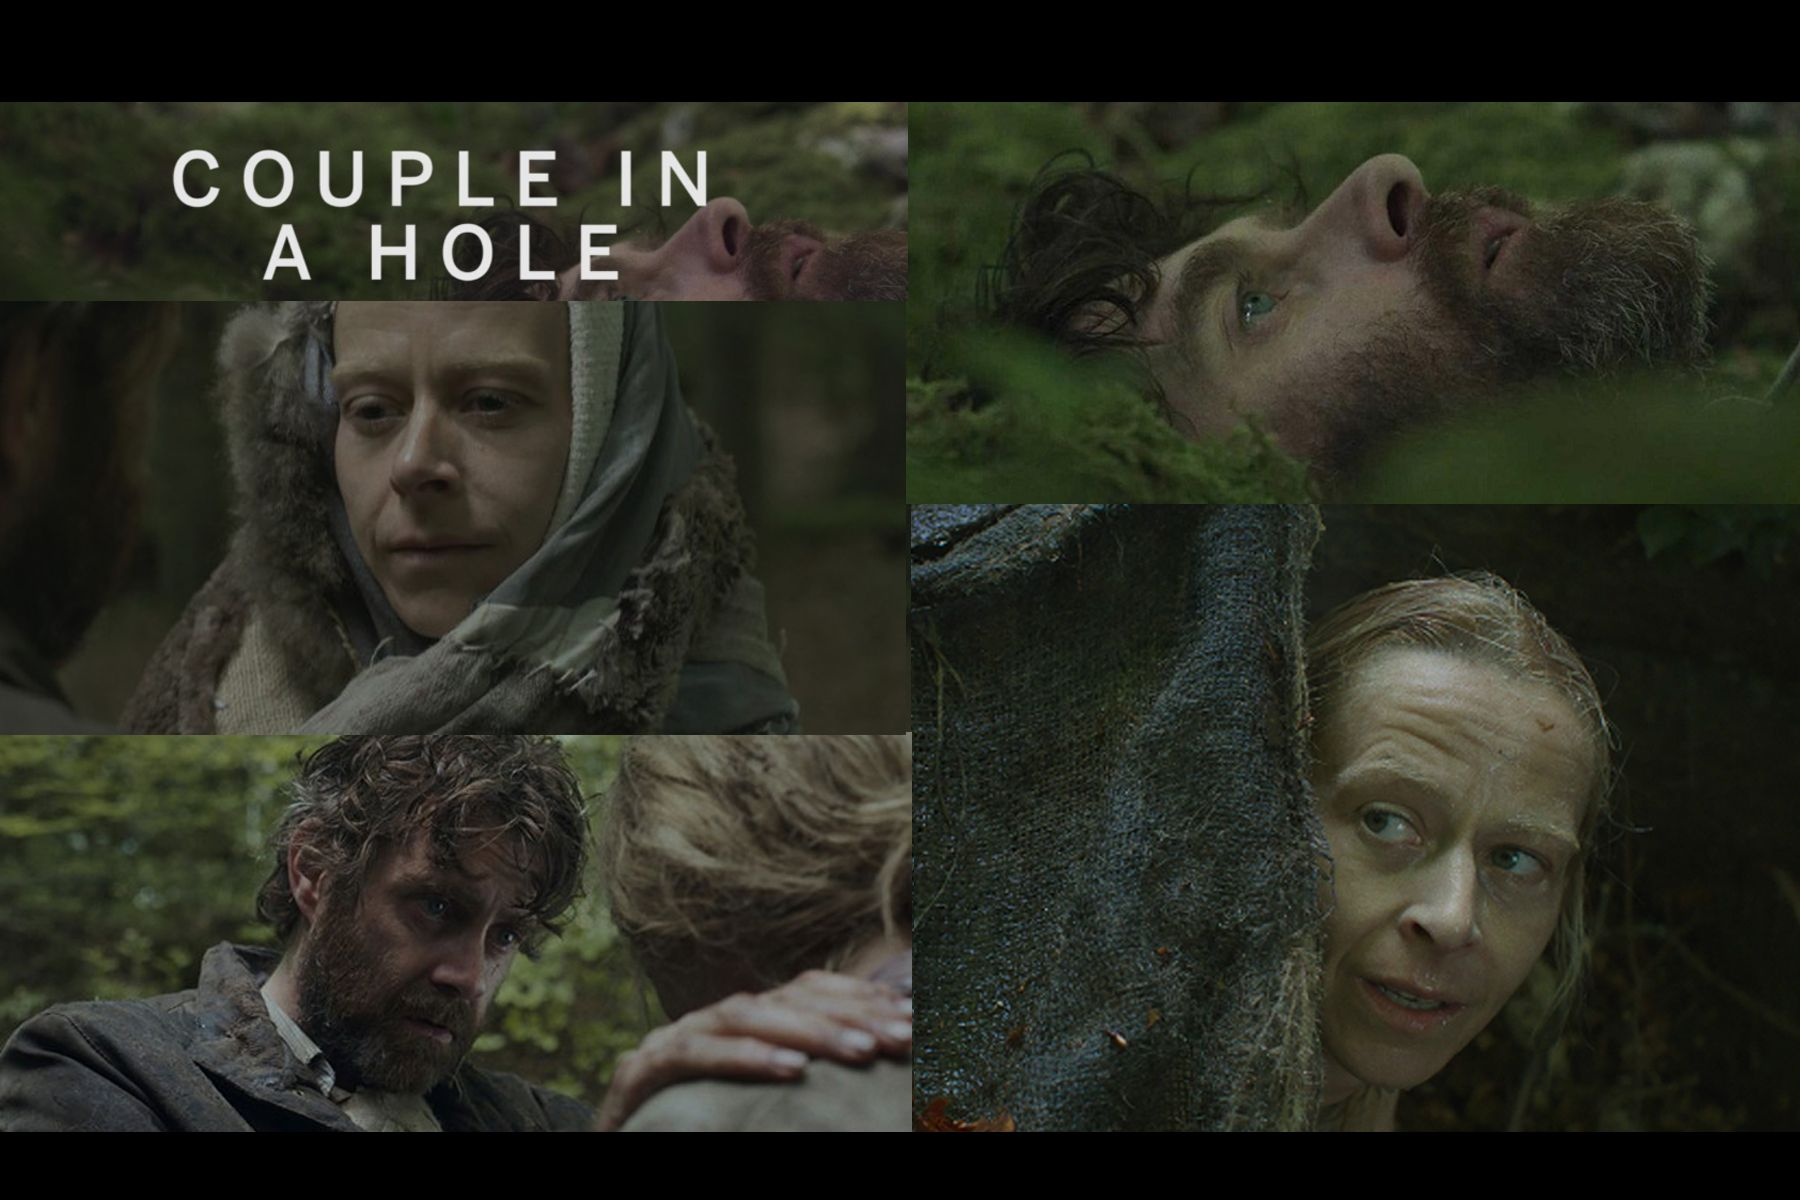 COUPLE IN A HOLE, FEATURE FILM